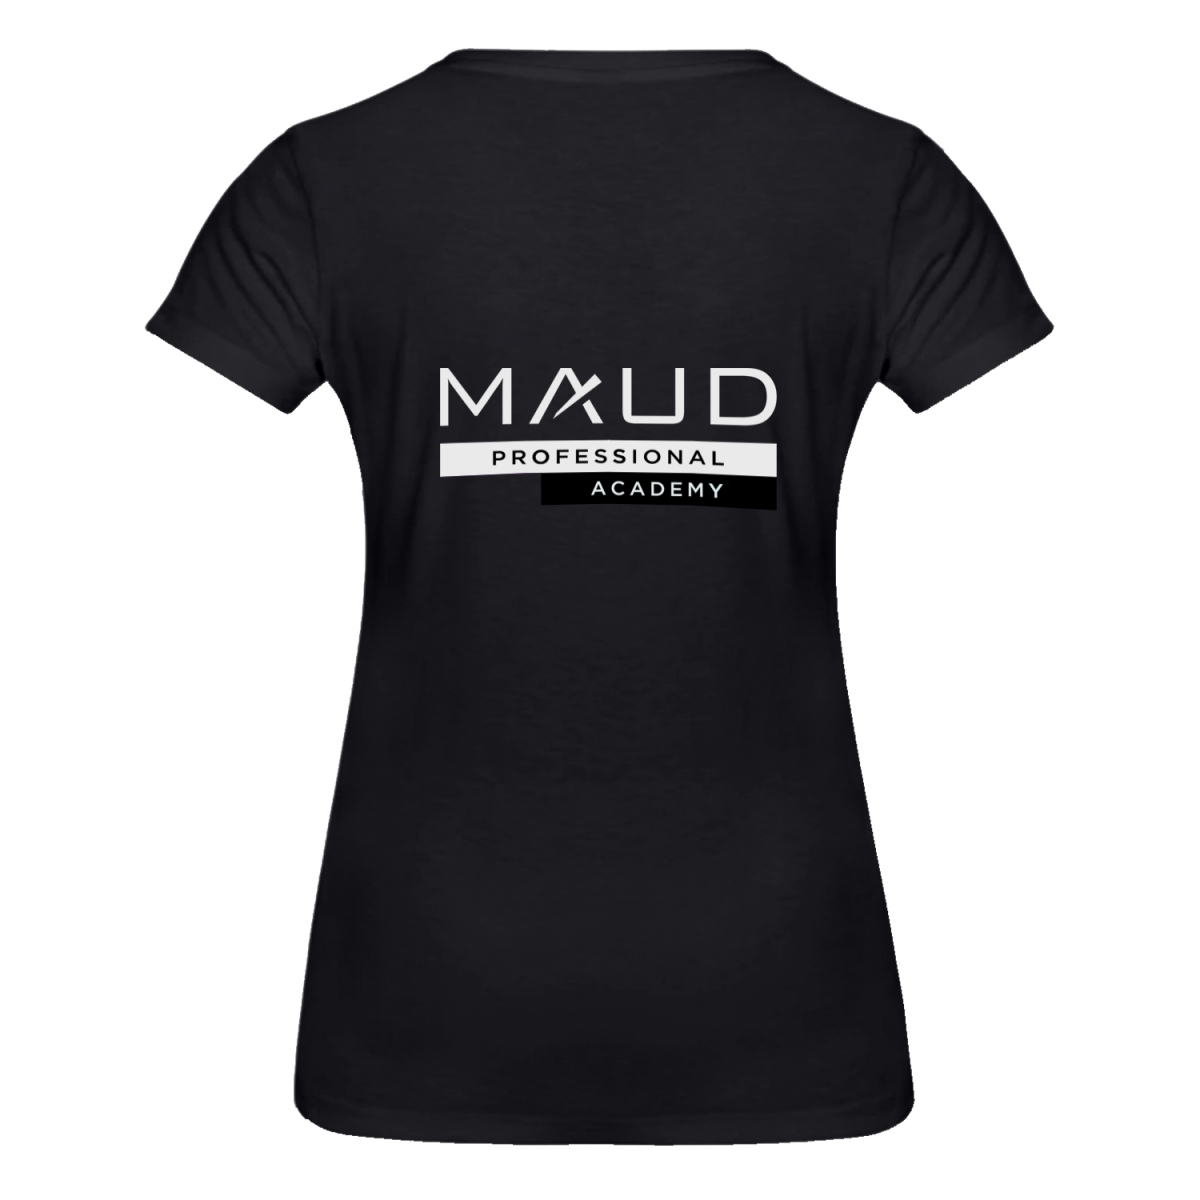 VETEMENTS - MAUD PROFESSIONAL SHOP - T-SHIRT MAUD ACADEMY FEMME NOIR